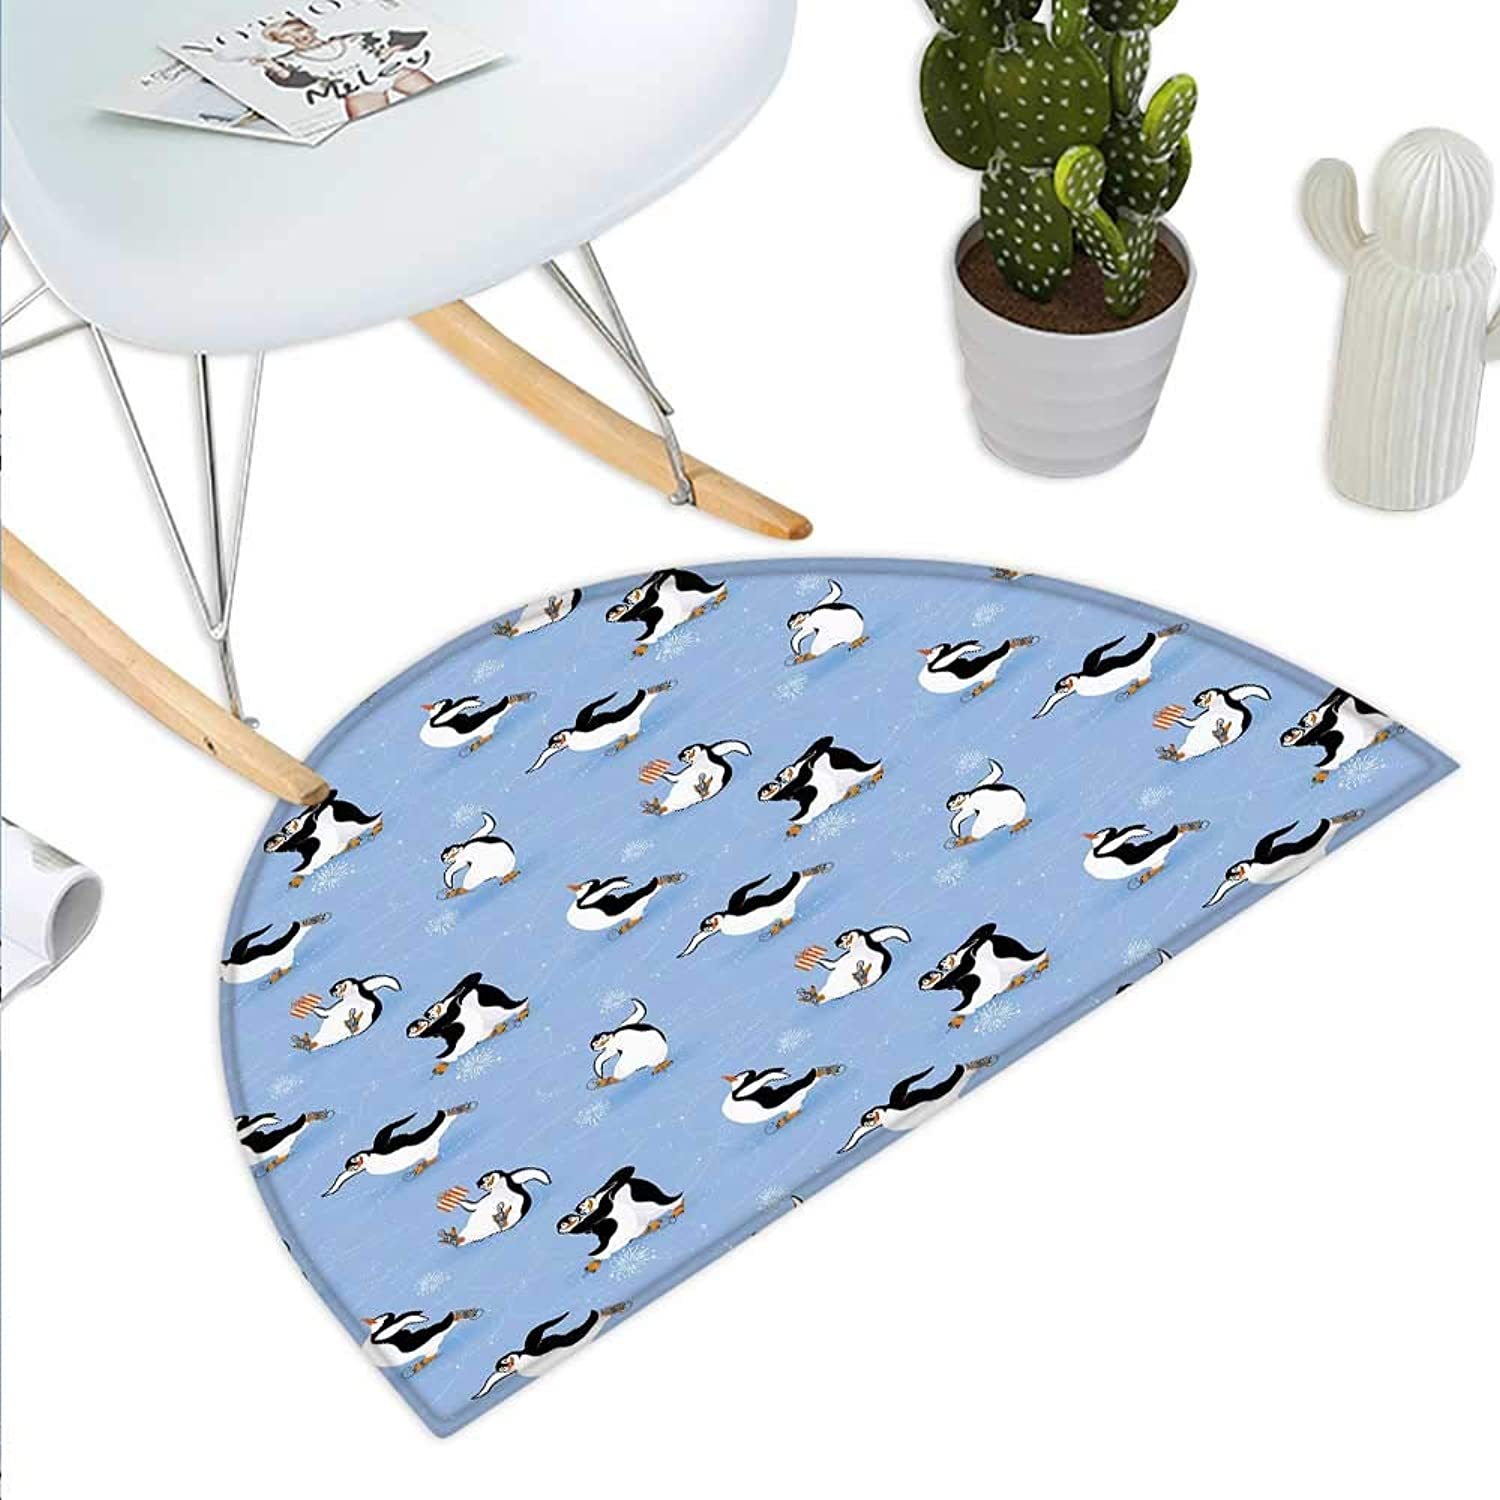 Cartoon Animal Semicircle Doormat Skating Funny Penguins Fun Activity Cheerful Smiling Mascots Cute Couple Halfmoon doormats H 39.3  xD 59  Multicolor